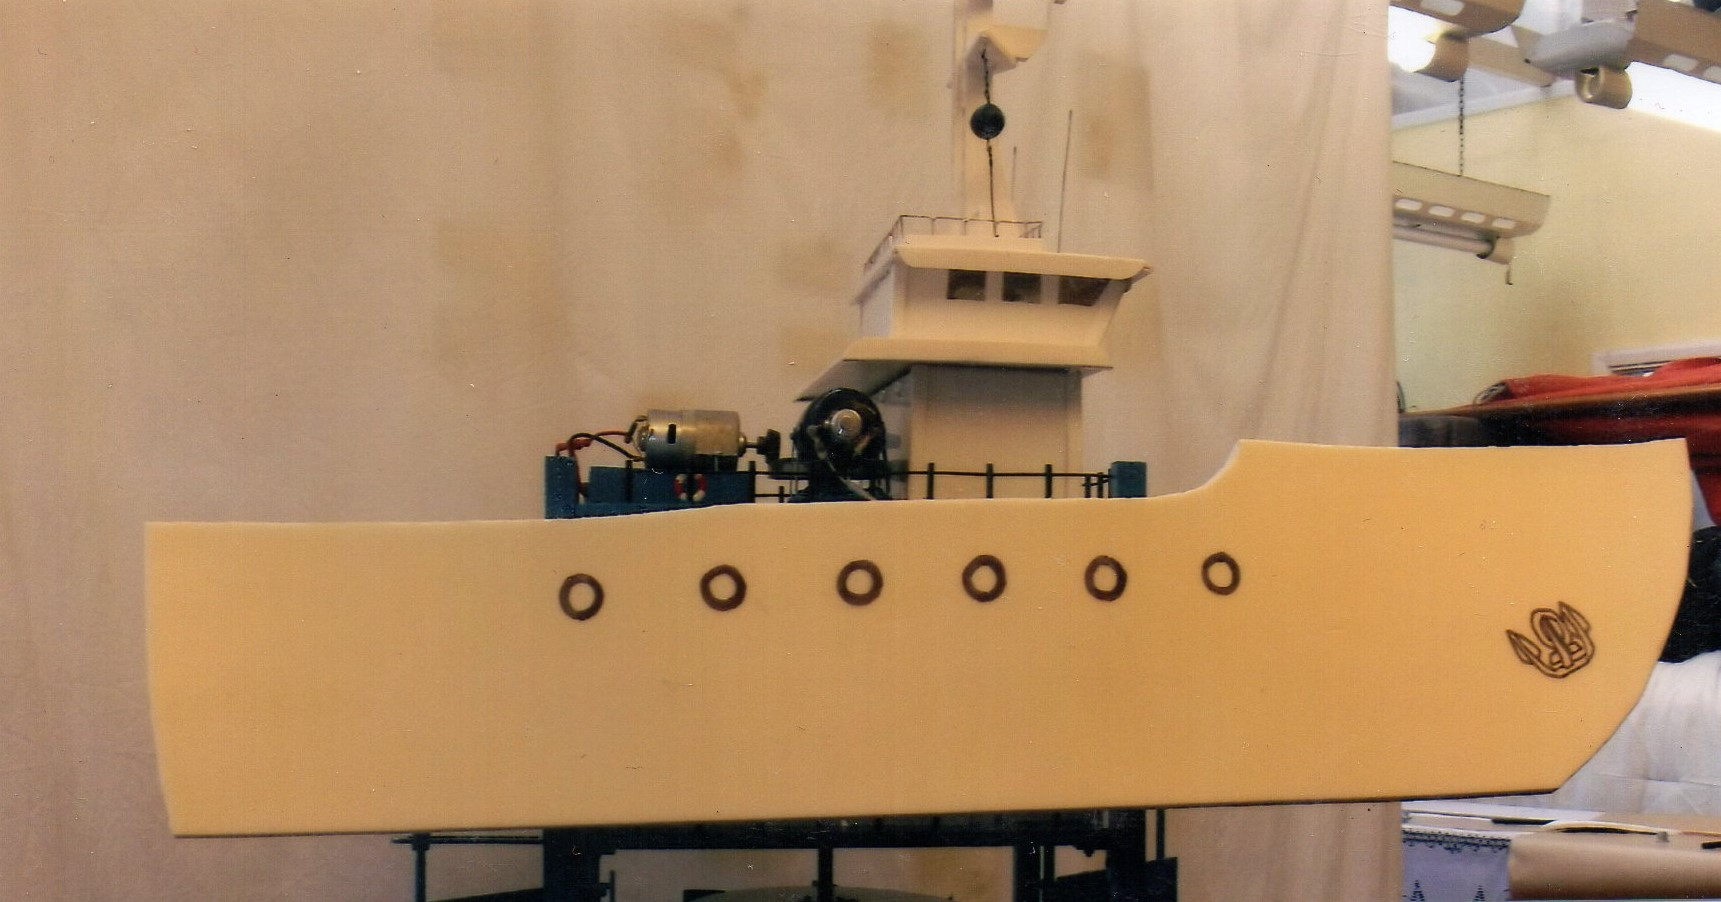 Eric Hoare's model of his tidal energy device in its ship guise so as not to be an eyesore when viewed from land.